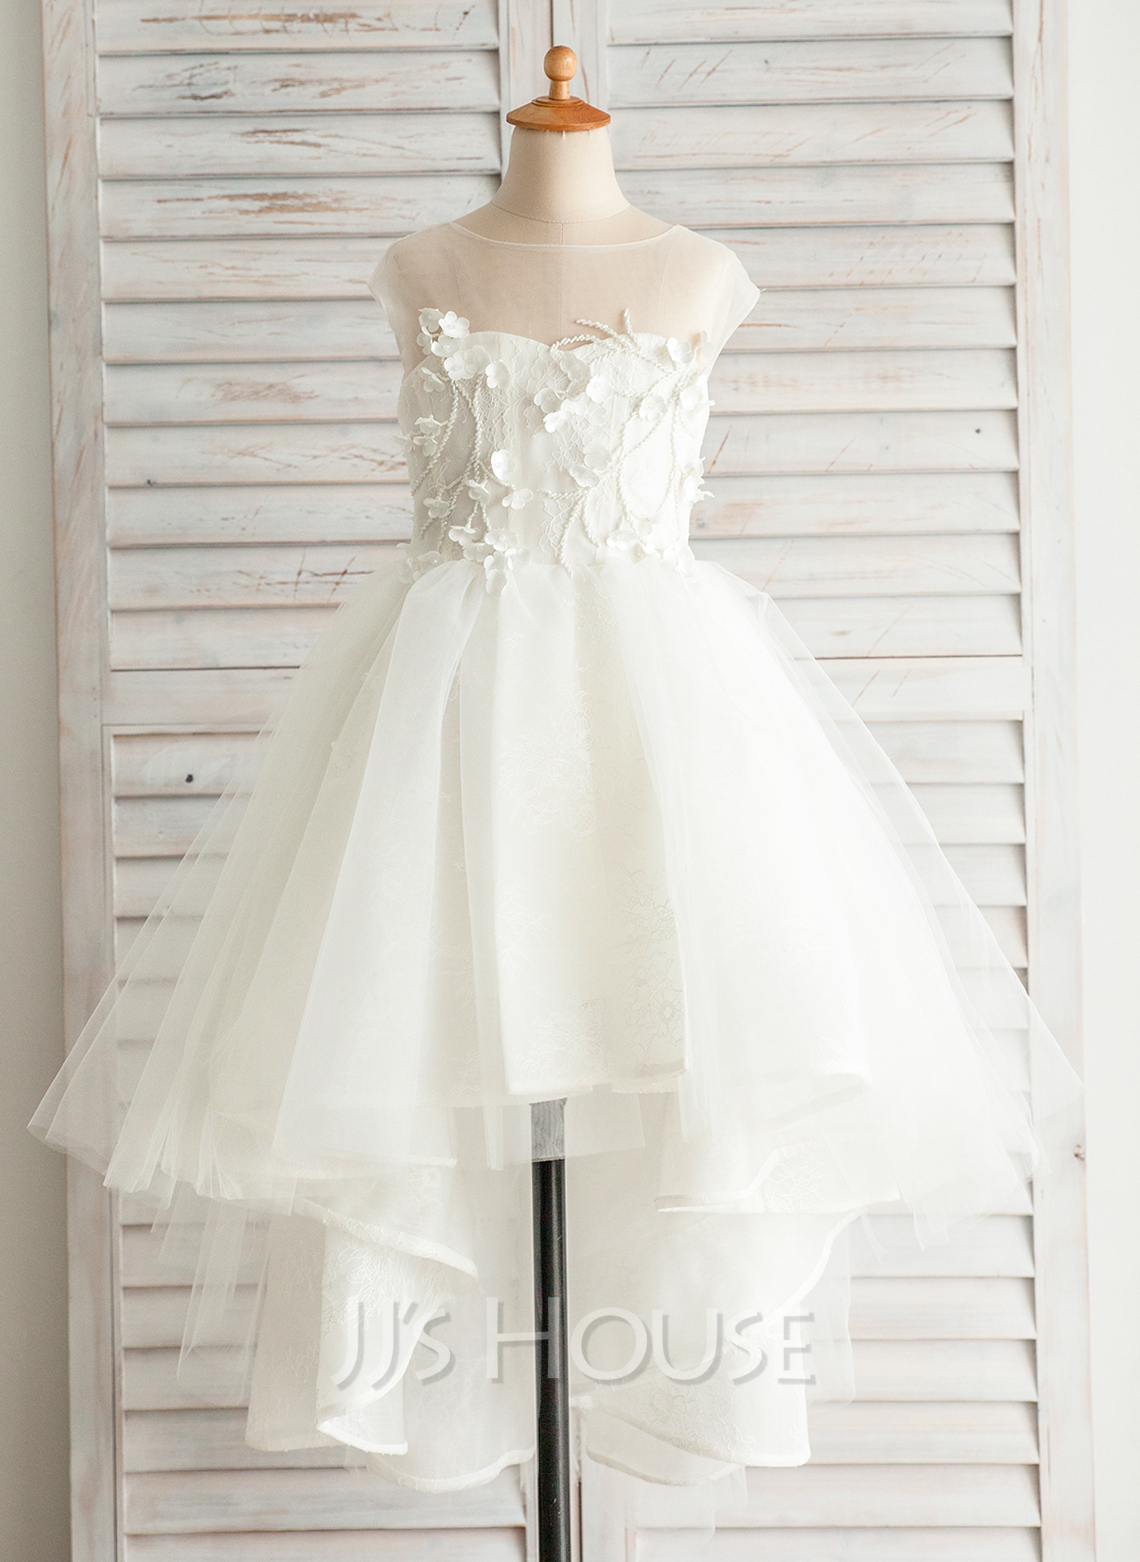 e029f6e1828 A-Line Princess Asymmetrical Flower Girl Dress - Satin Tulle Cotton  Sleeveless. Loading zoom